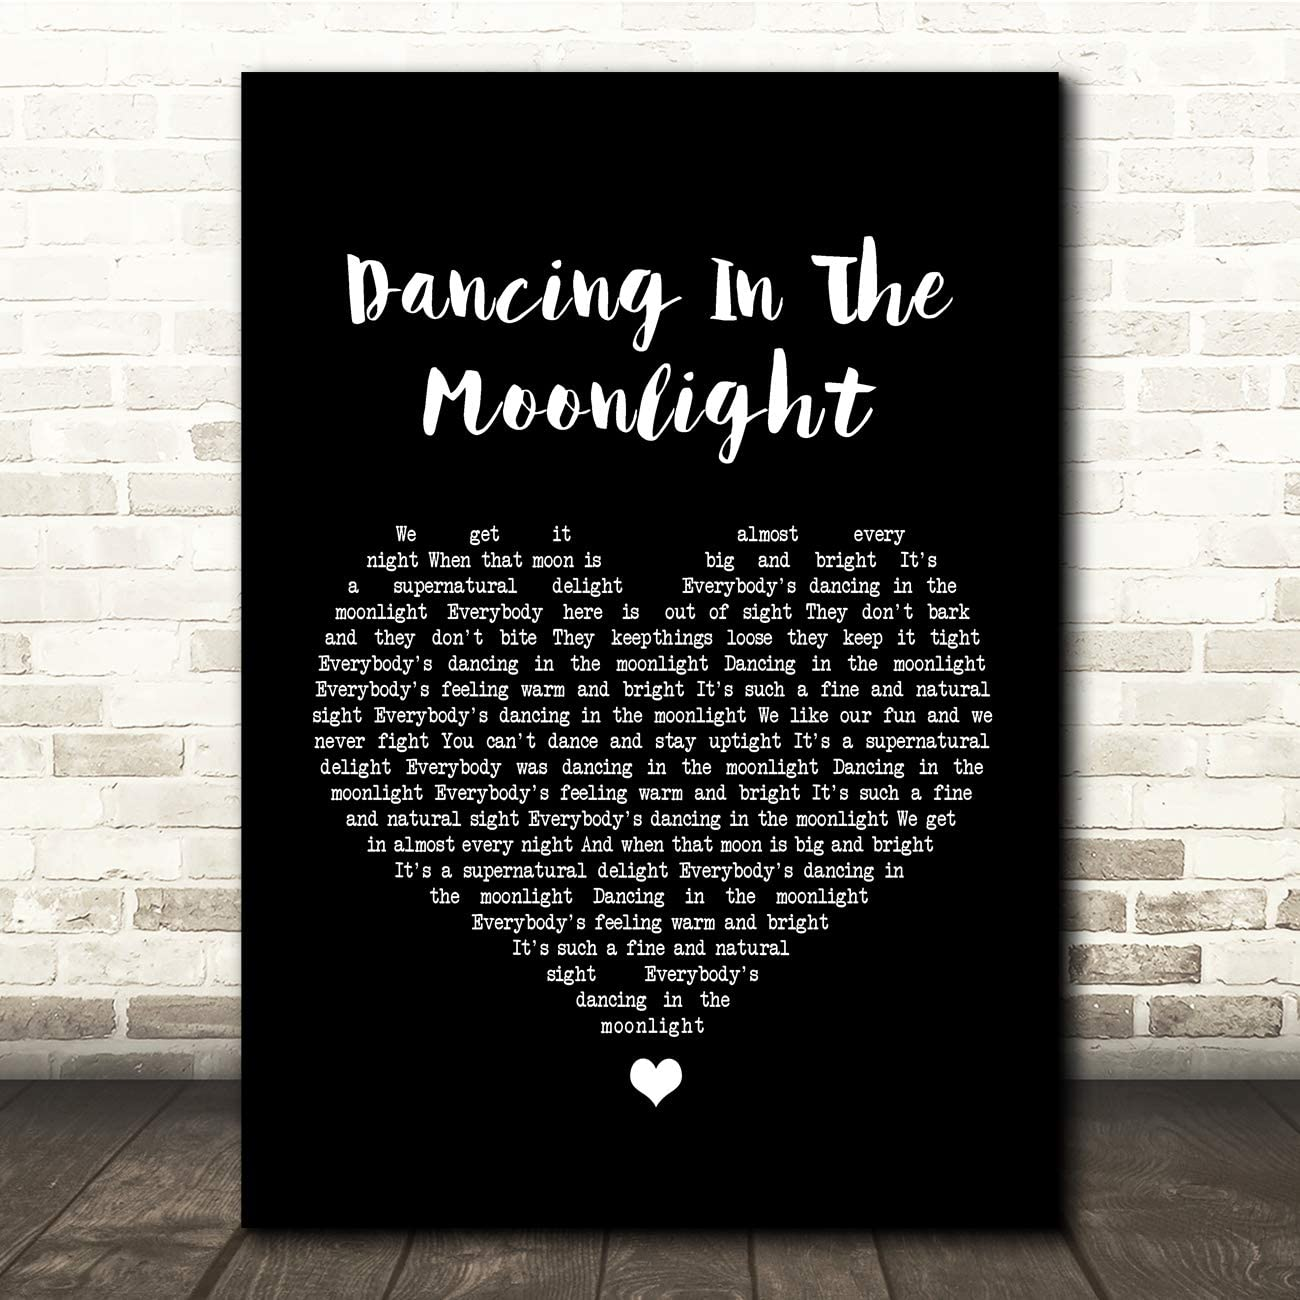 Fingerprint Designs Dancing In The Moonlight Black Heart Song Lyric Quote Print Amazon Co Uk Kitchen Home Elyrics k king harvest lyrics. song lyric quote print